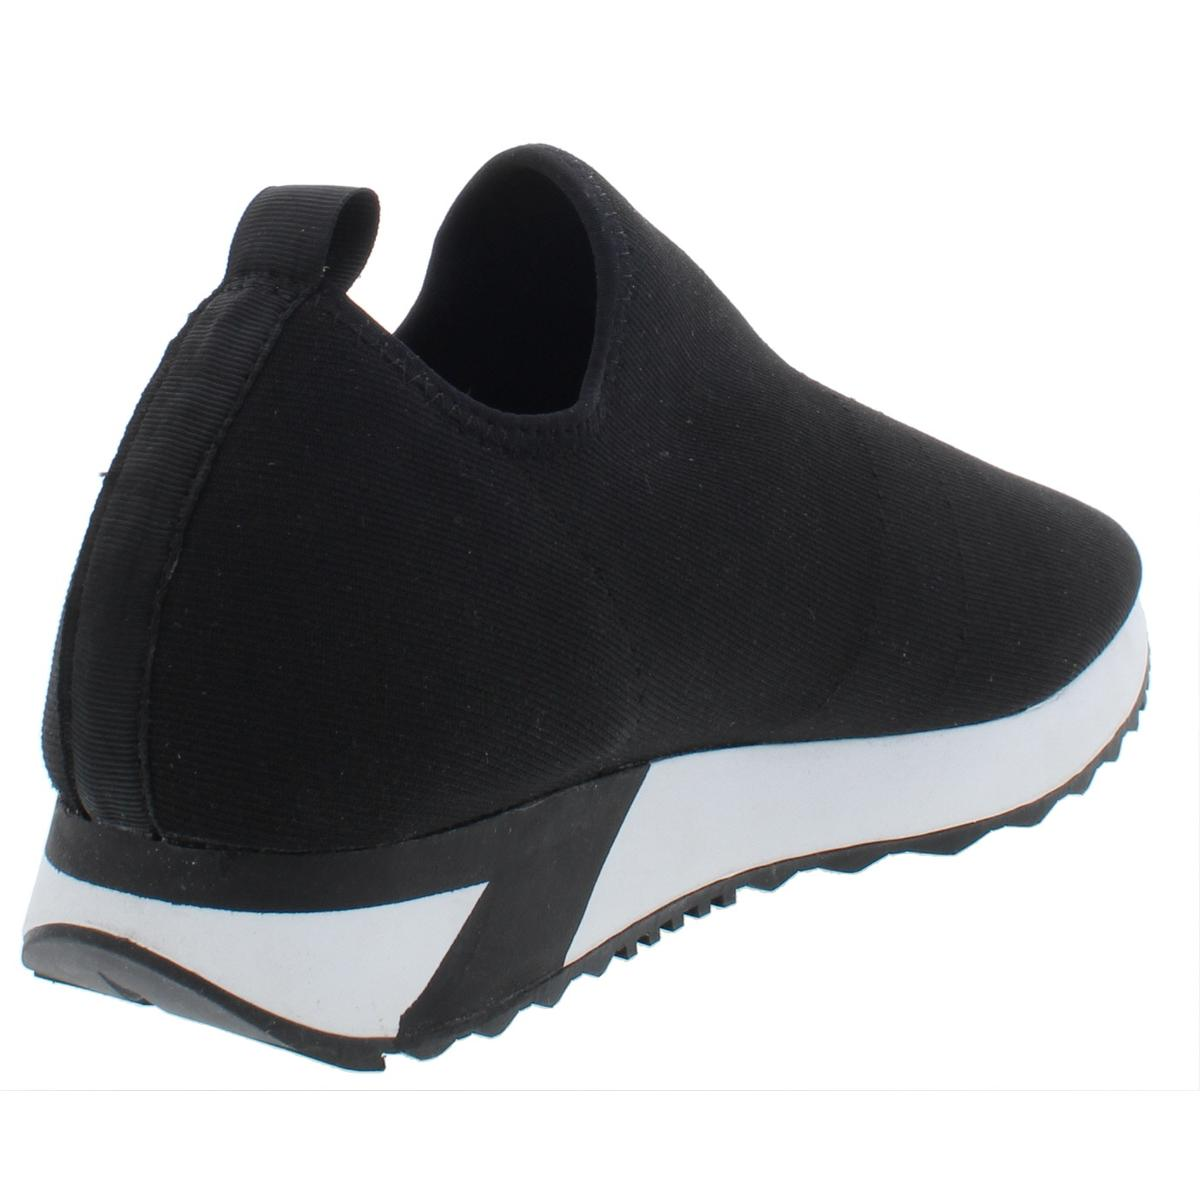 d4d492ddb20 Steve Madden Womens Speed Low Top Fashion Trainer Sneakers Shoes ...